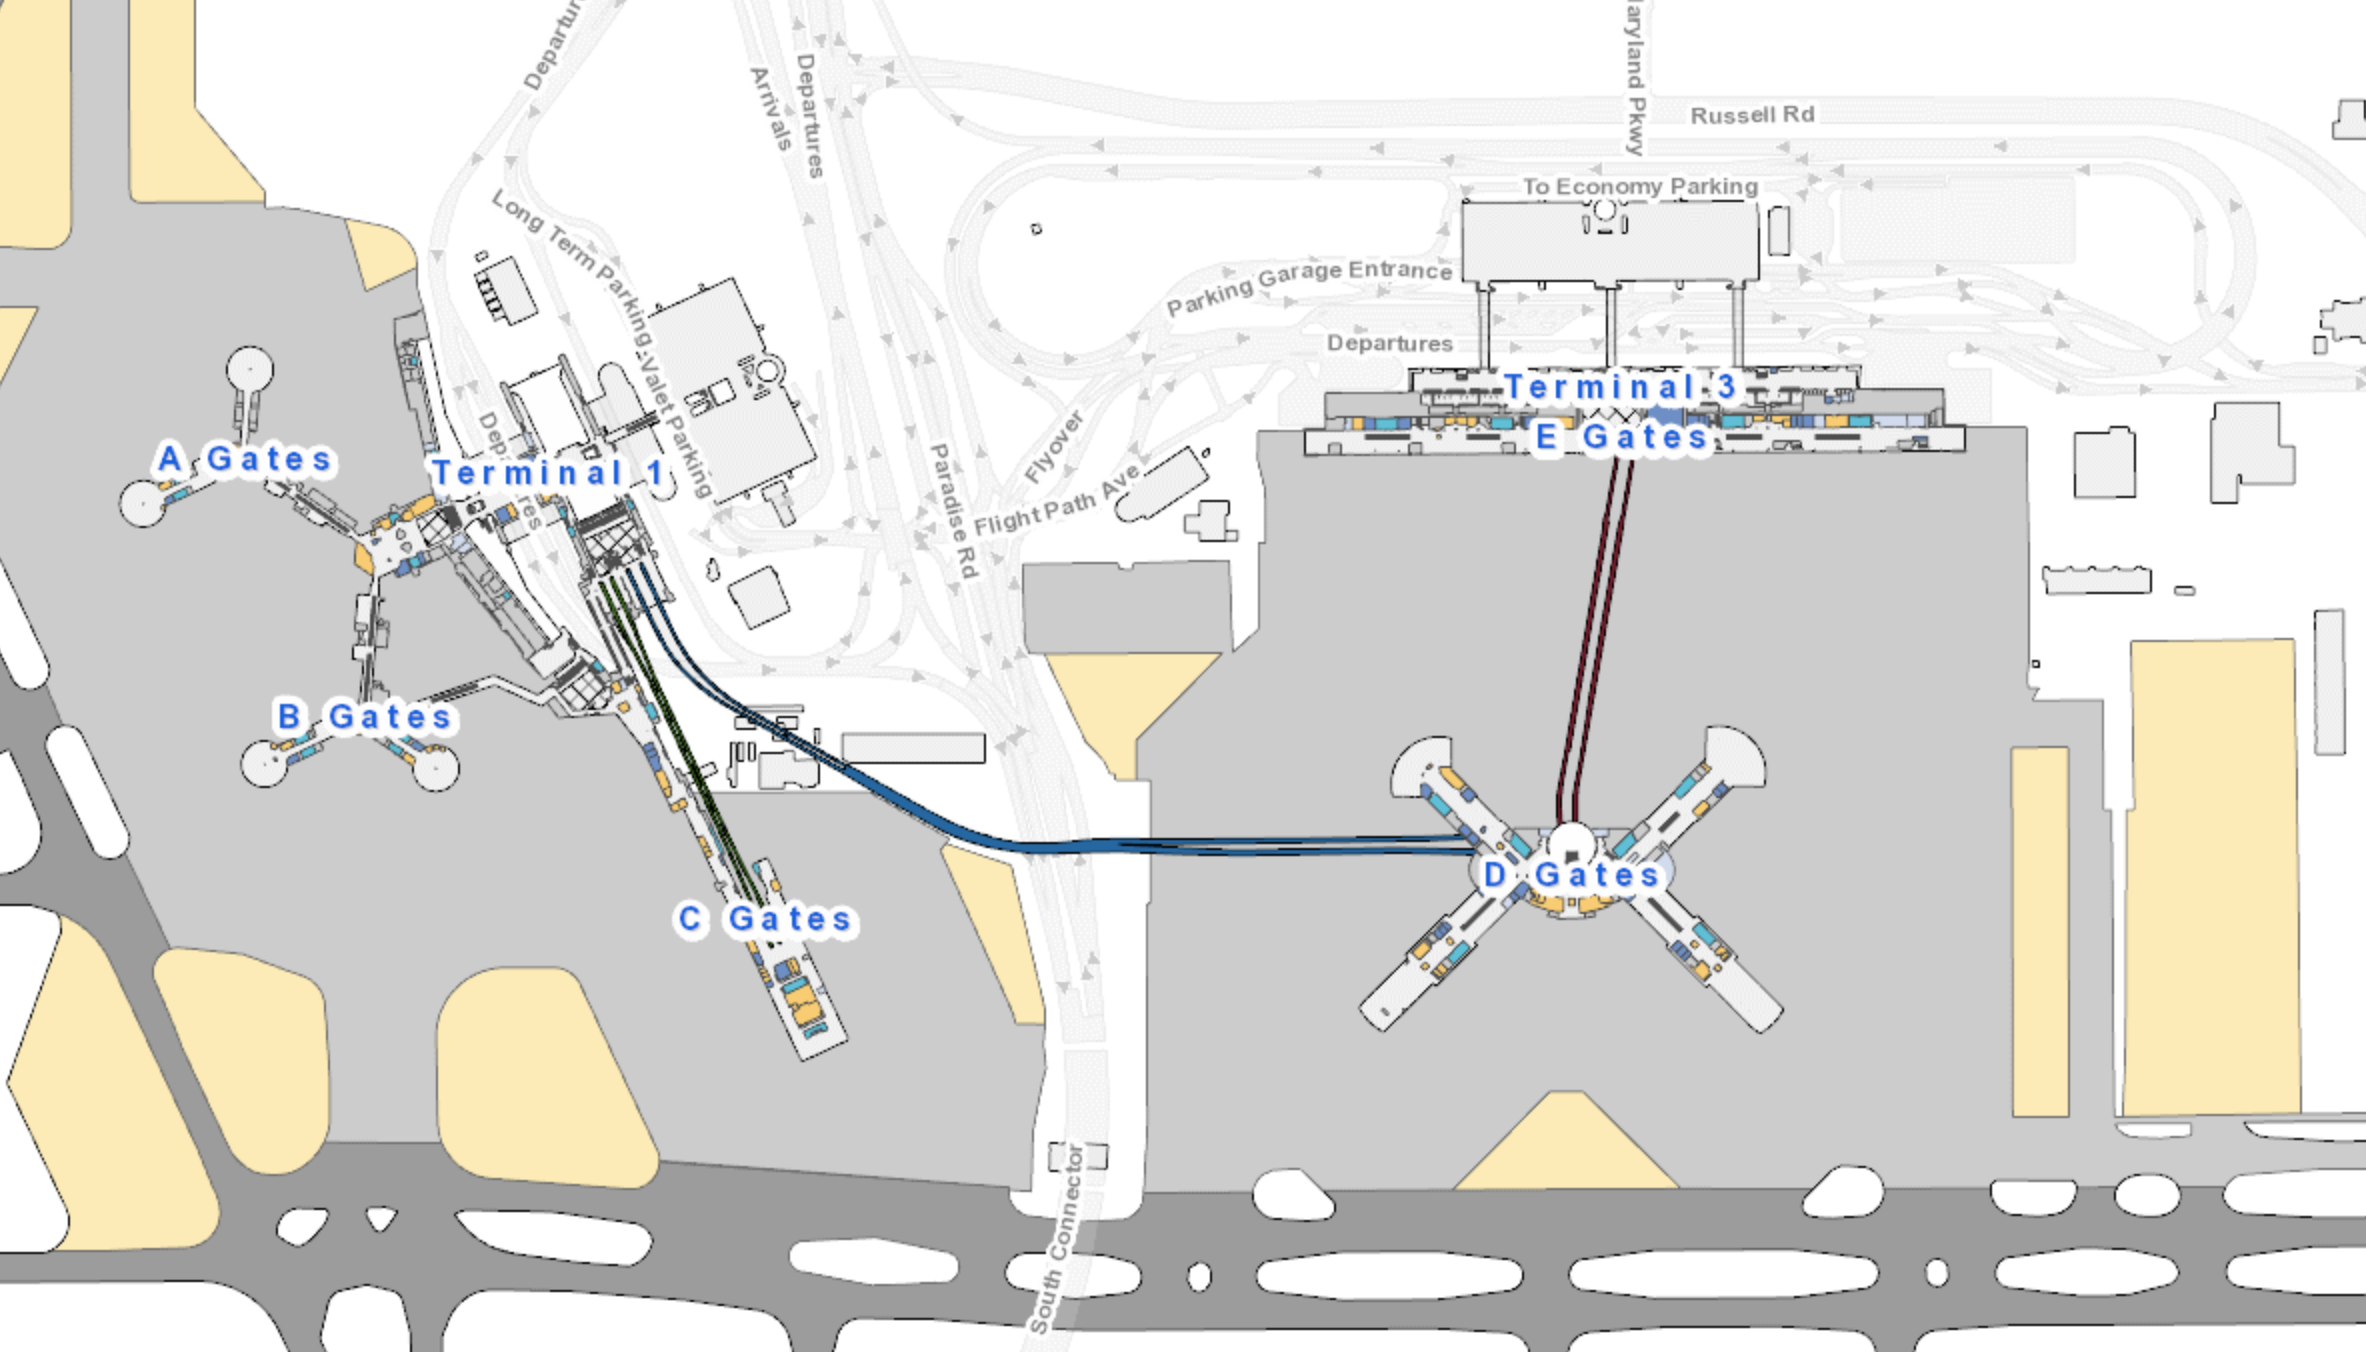 LAS Airport map